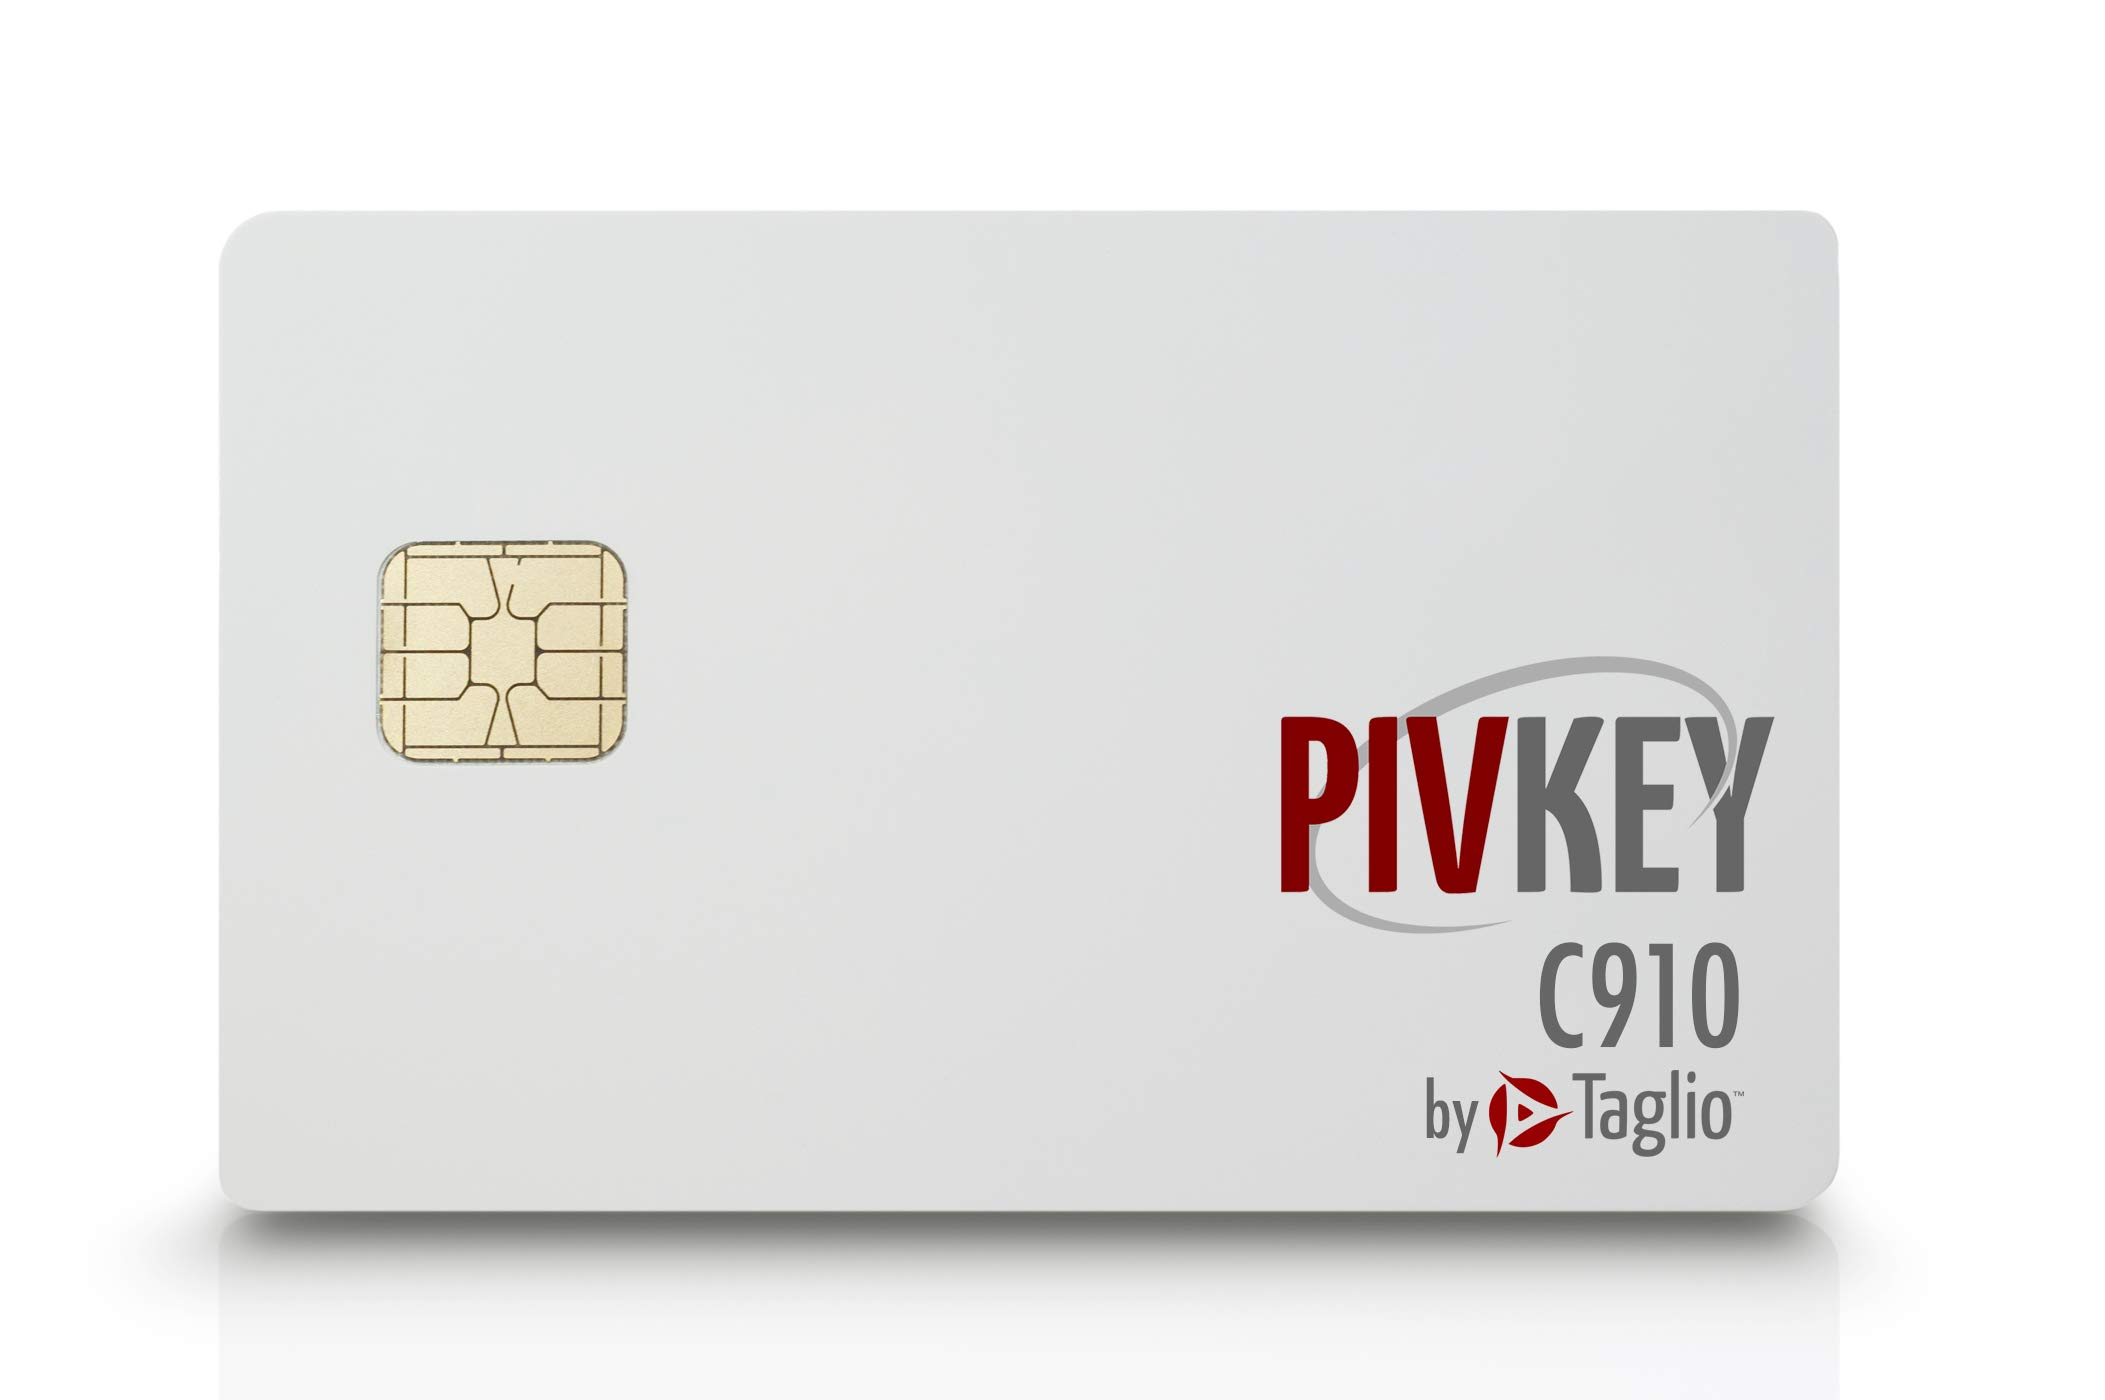 Taglio PIVKey C910 Certificate Based PKI Smart Card for Authentication and Identification, Dual Interface Contact/Contactless Smart Card, Supports Windows PIV Drivers, Standard ISO.